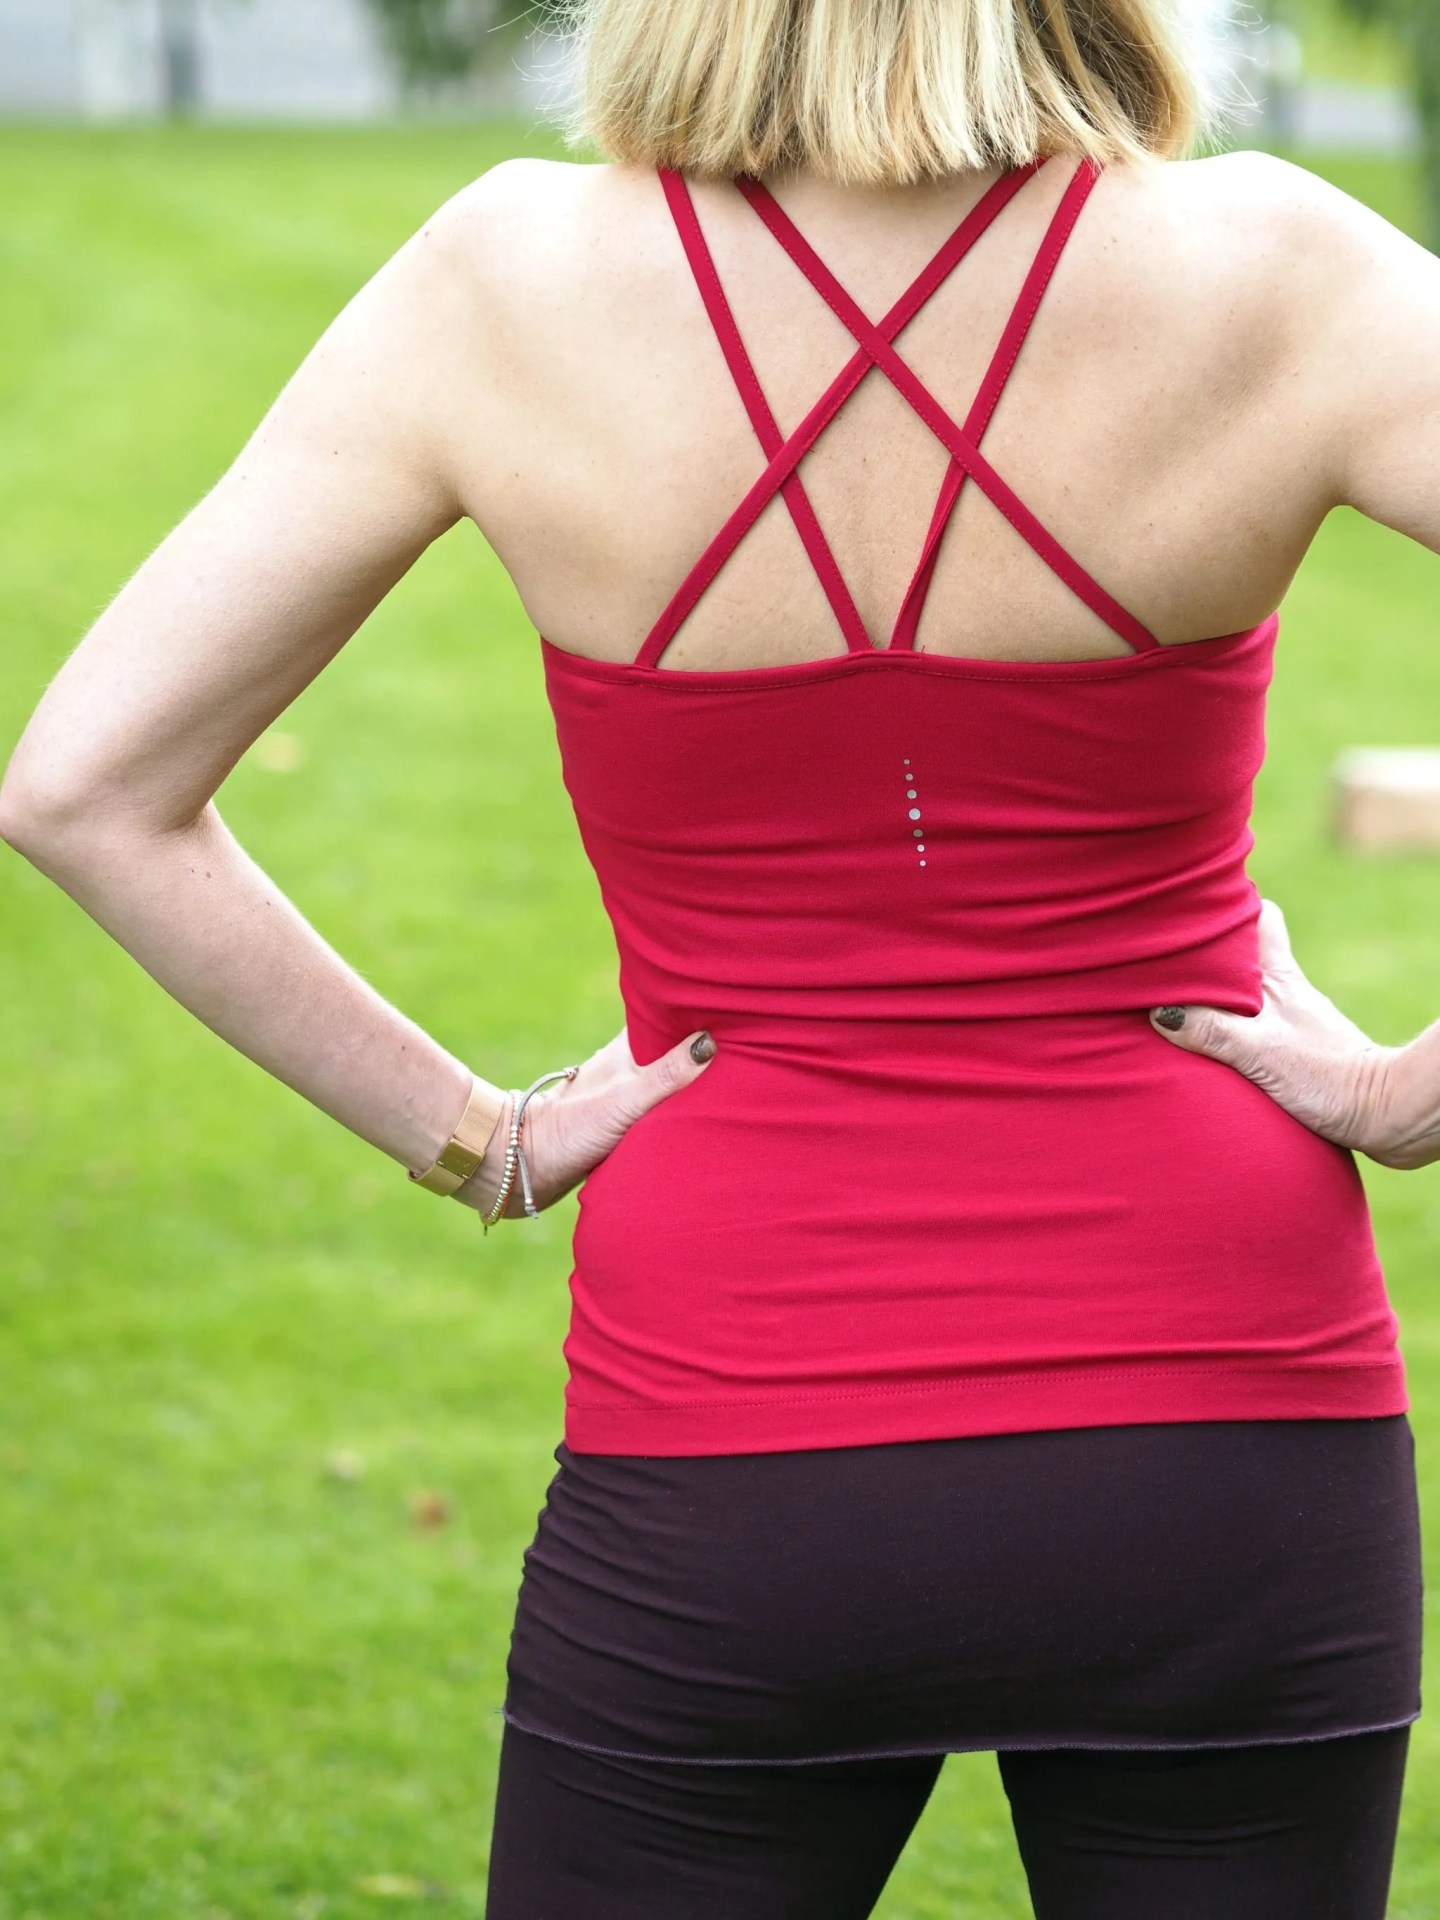 What-Lizzy-loves-bamboo-yoga-clothes-crossover-vest